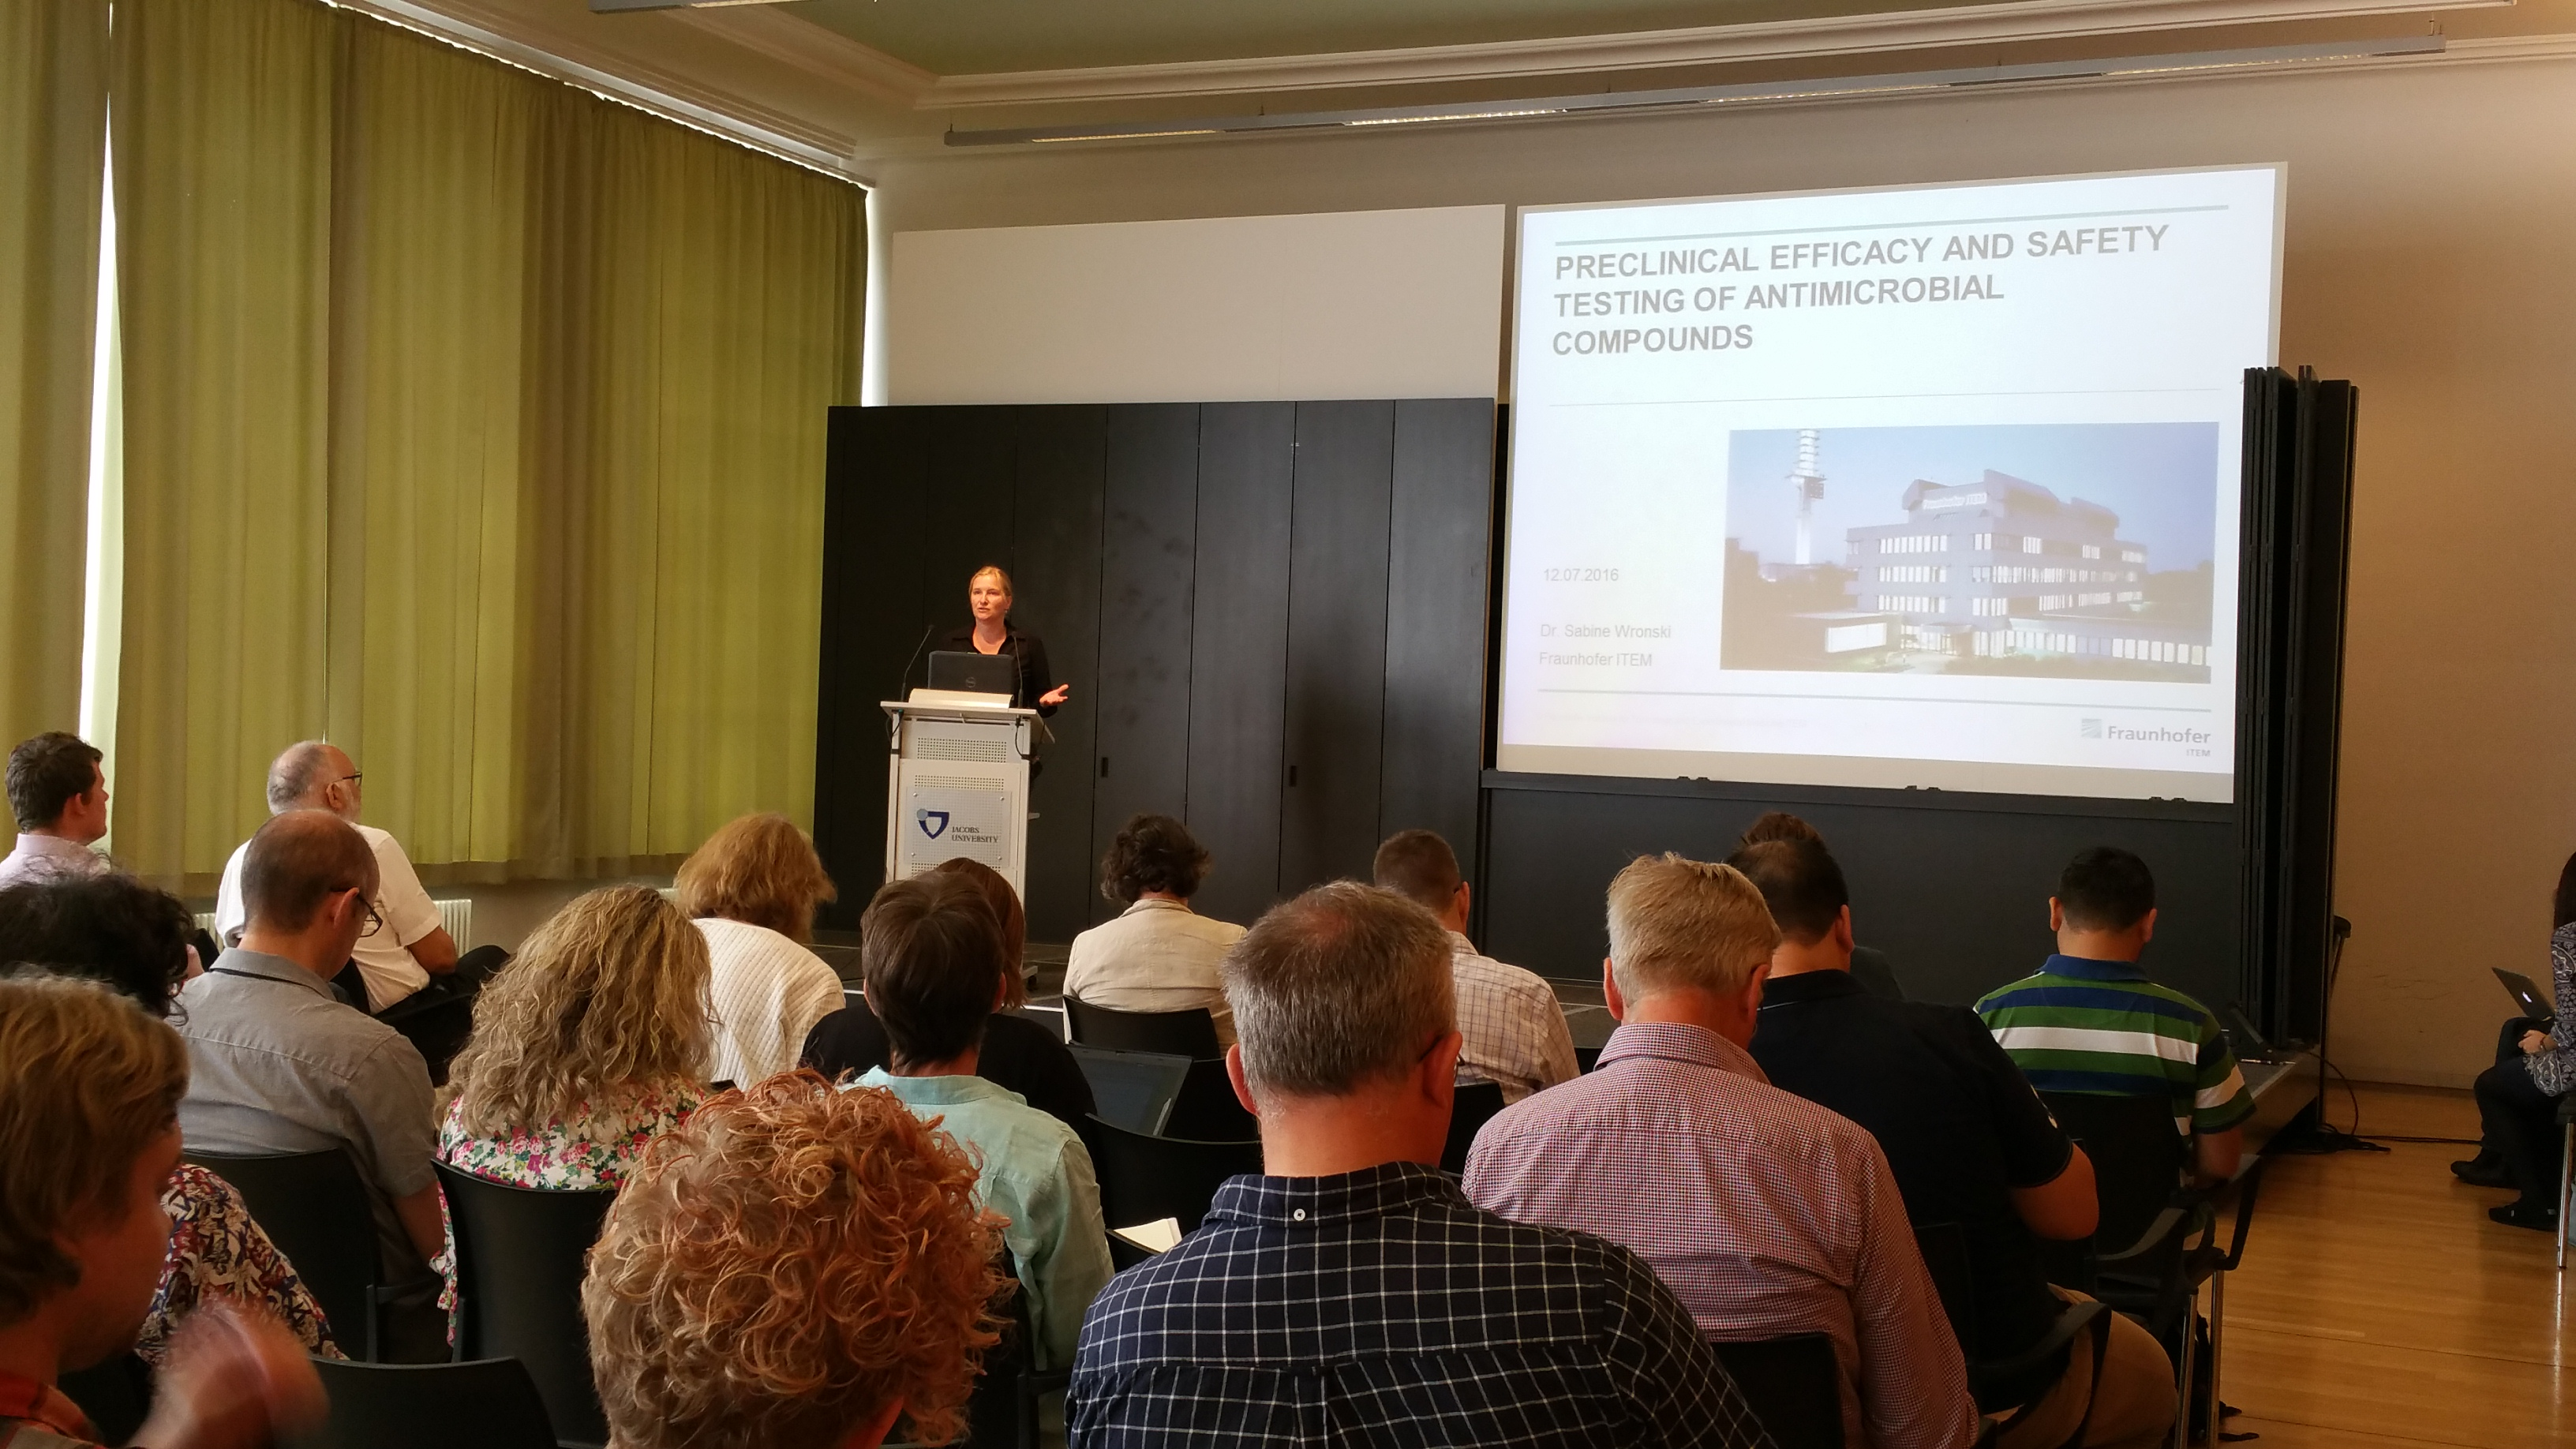 Sabine Wronski (Fraunhofer ITEM, Hannover, Germany) - Preclinical efficacy and safety testing of antimicrobial compounds